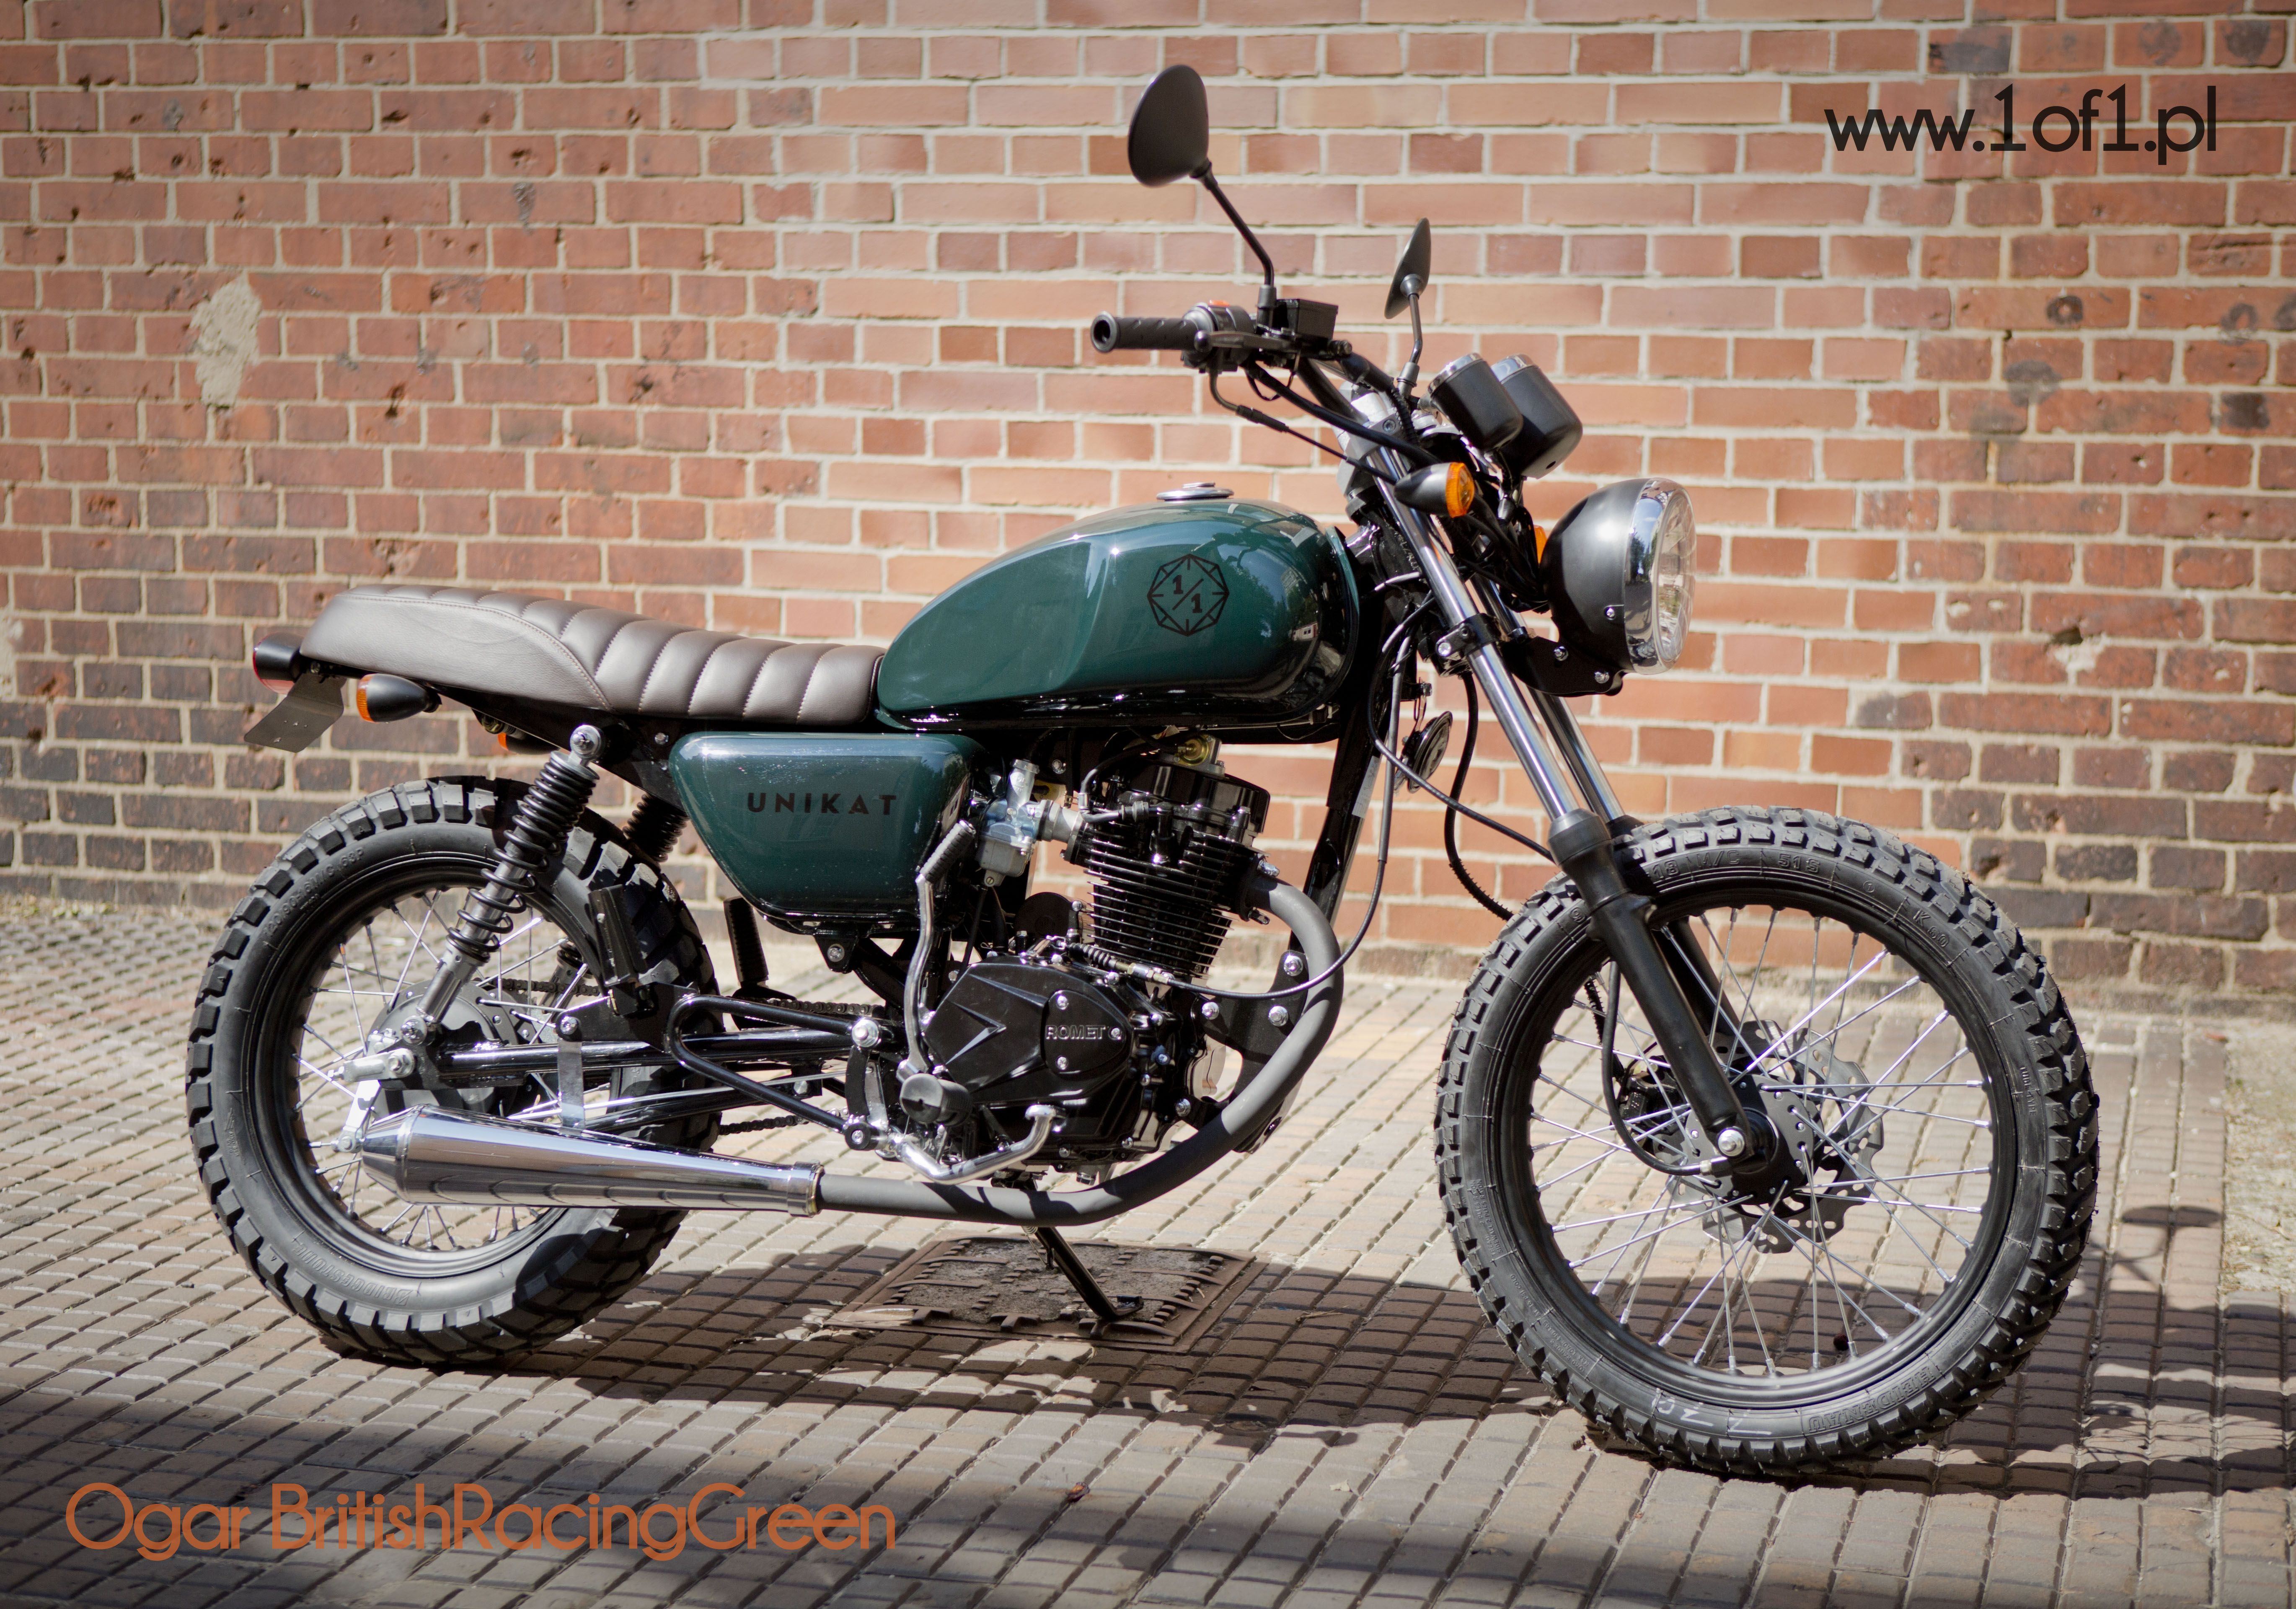 ogar 125 ccm type x beautiful scrambler custom by unikat motorworks. Black Bedroom Furniture Sets. Home Design Ideas